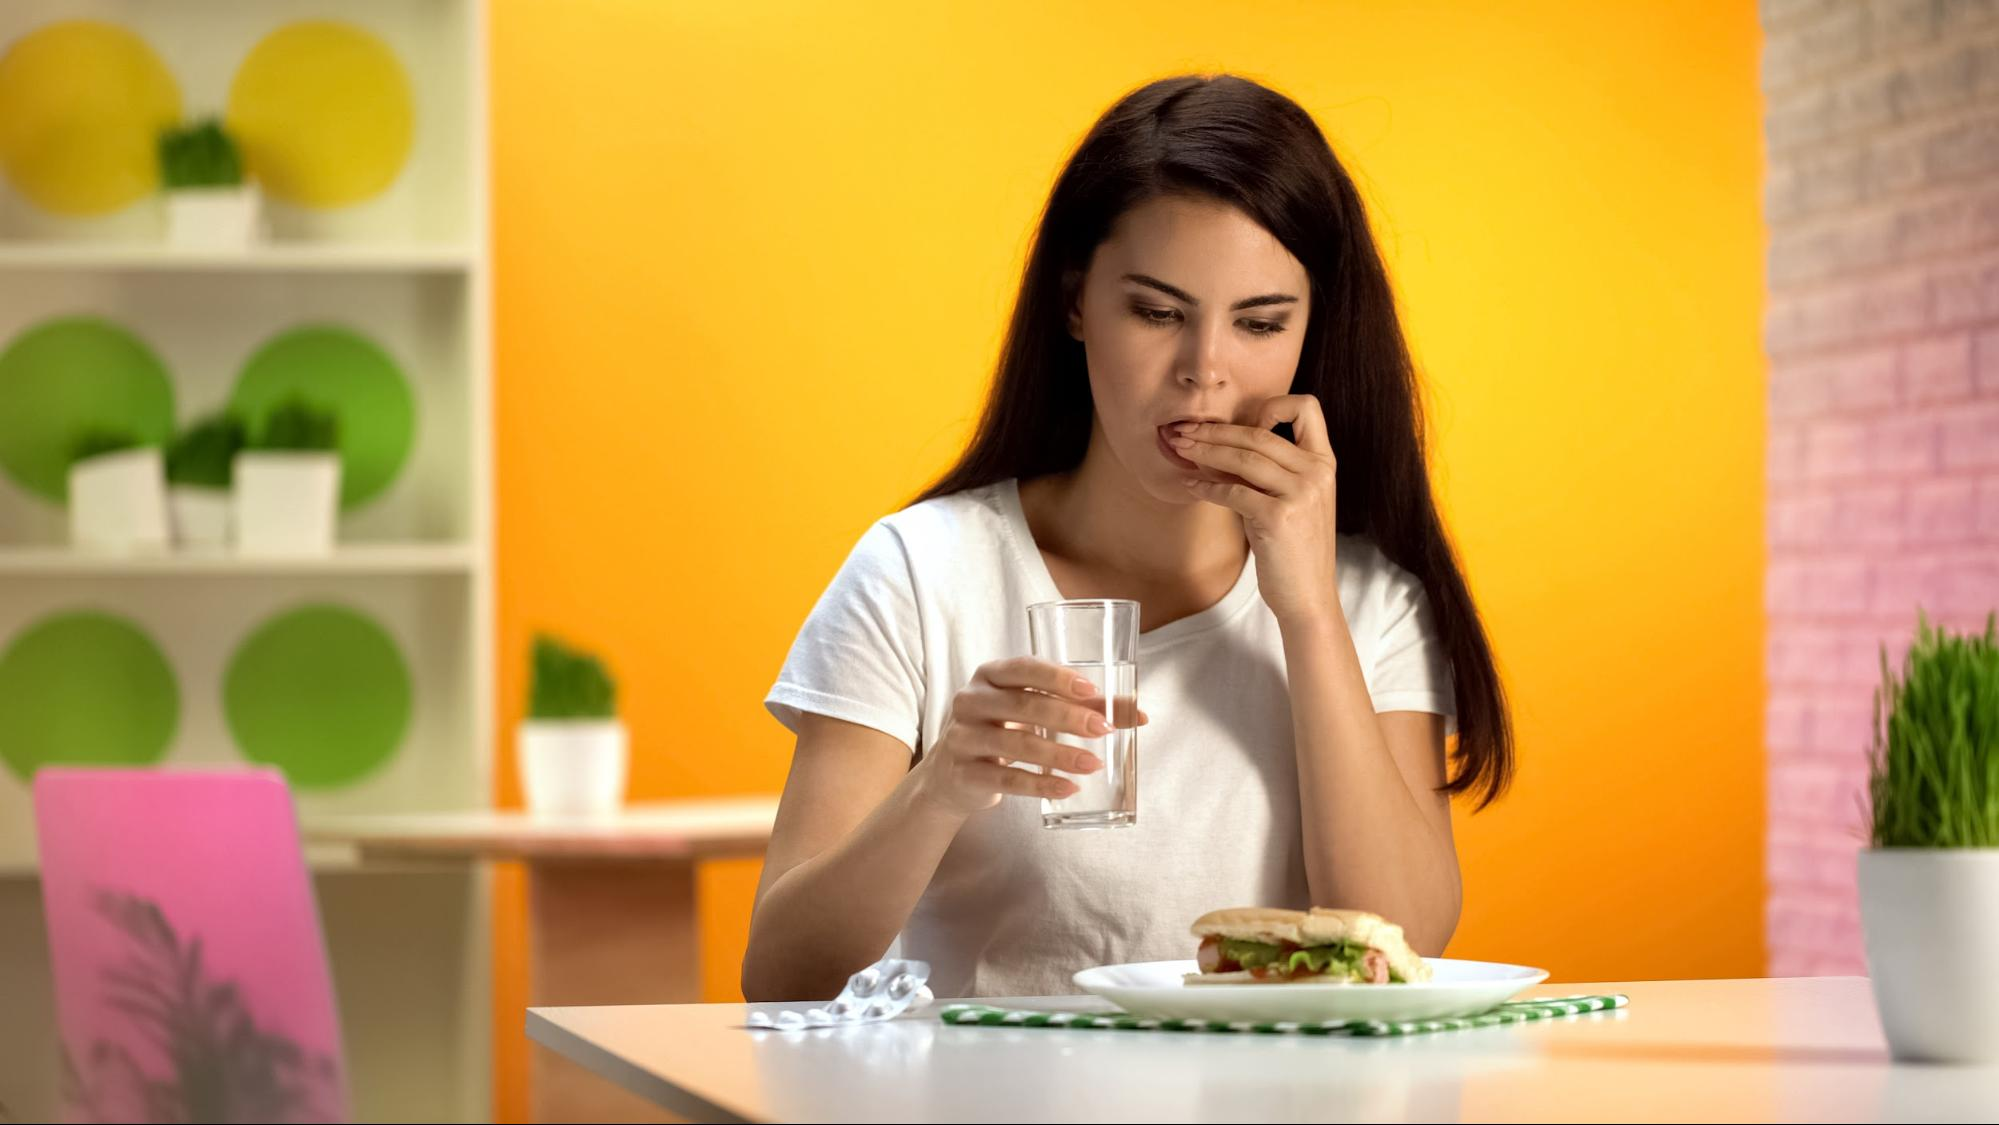 A woman taking a pill while eating